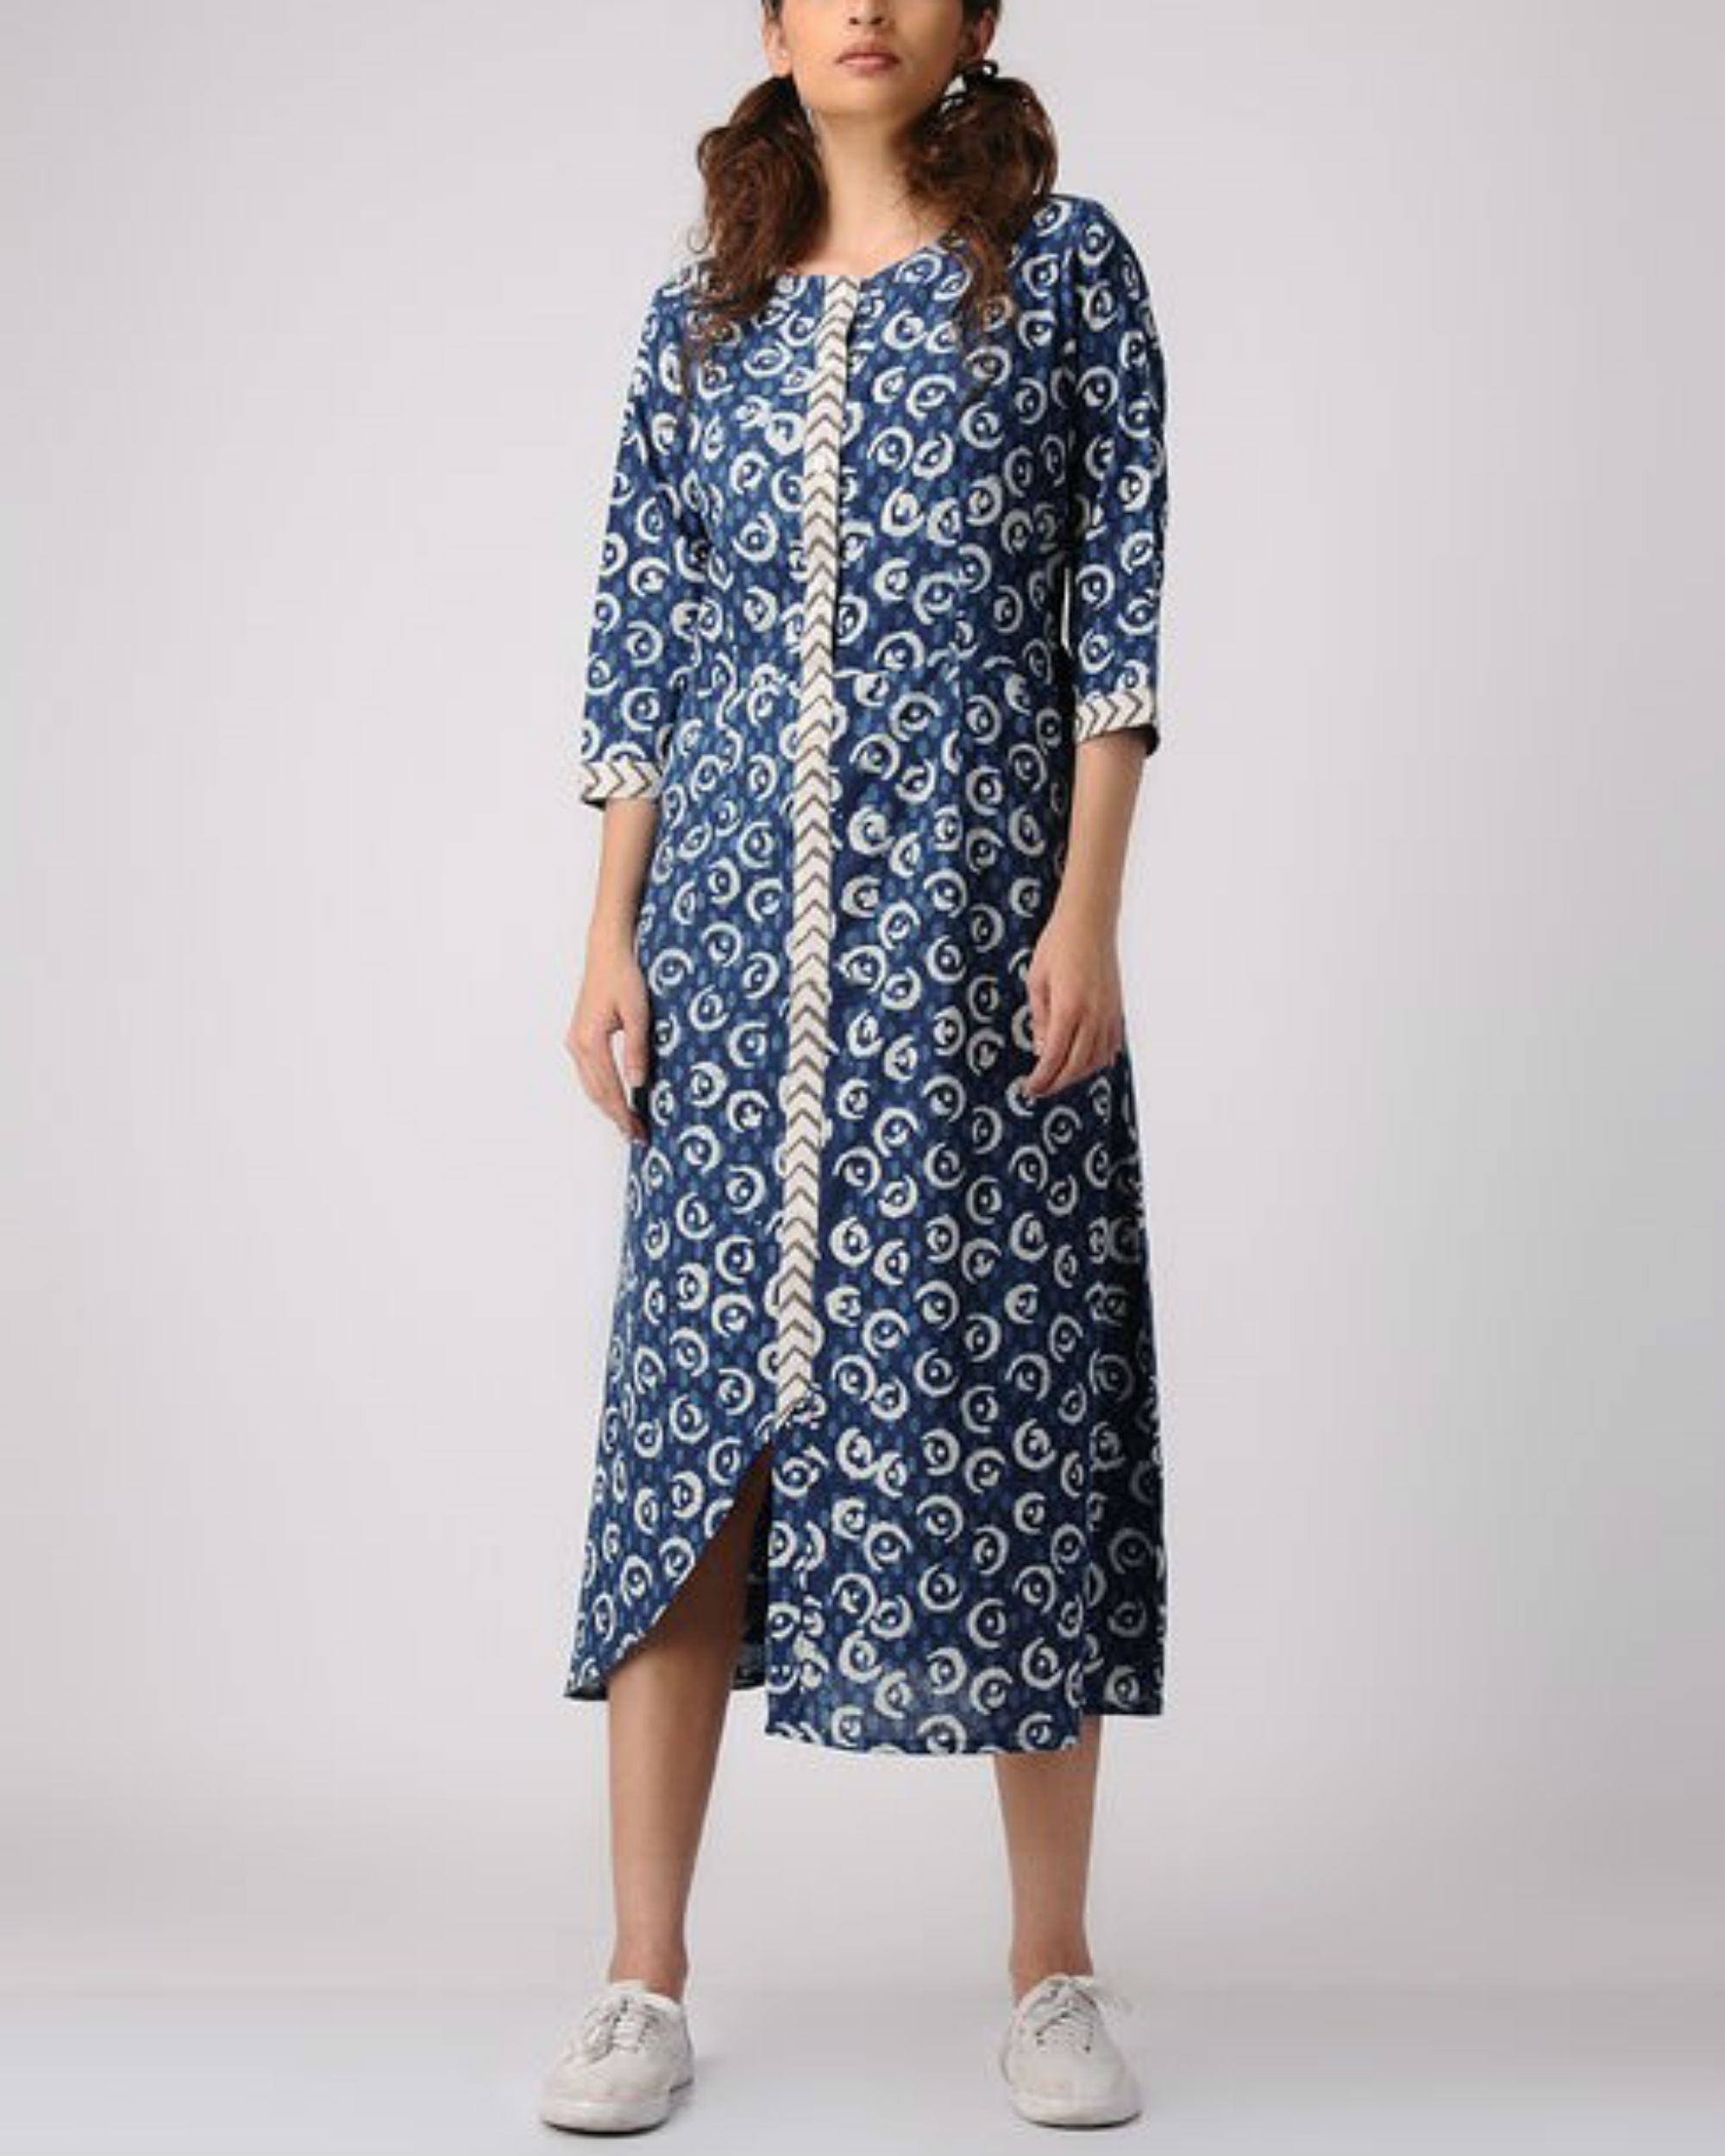 Indigo apple dress